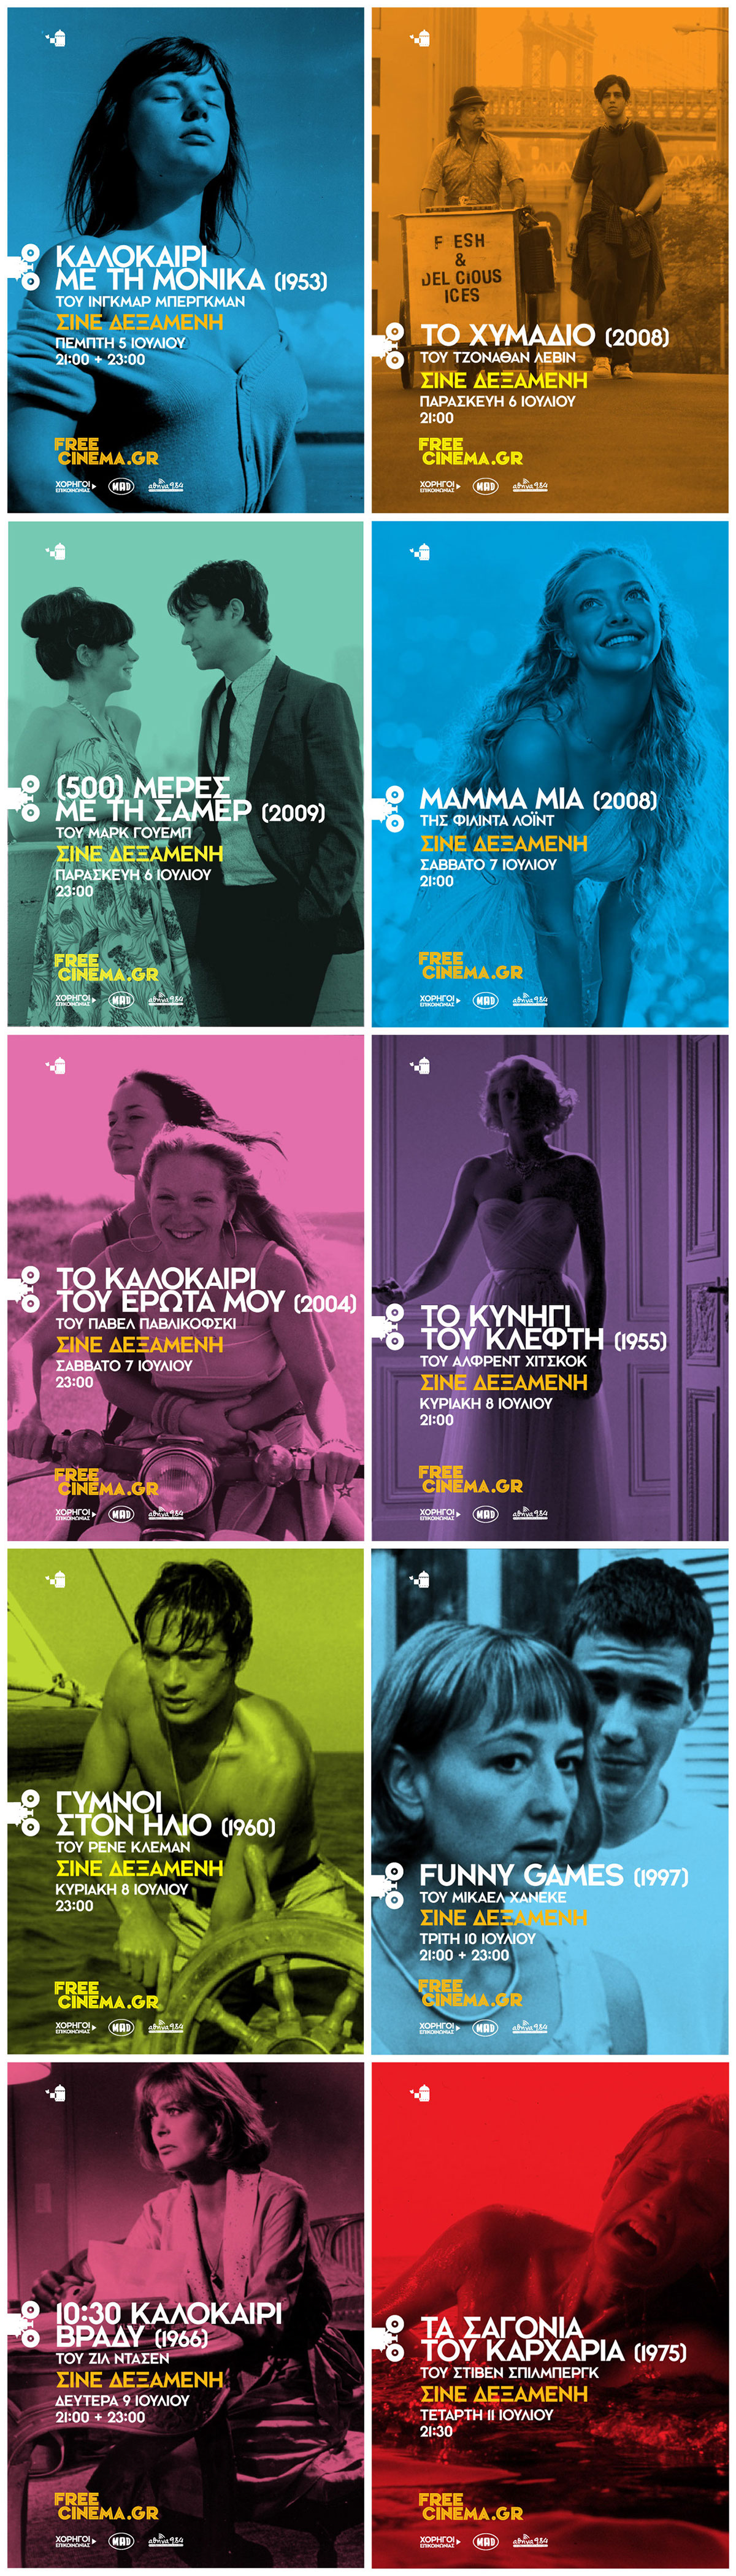 athens film festival free cinema identity poster print suddenly this summer καλοκαιρι ξαφνικά film poster movie poster Movies Greece